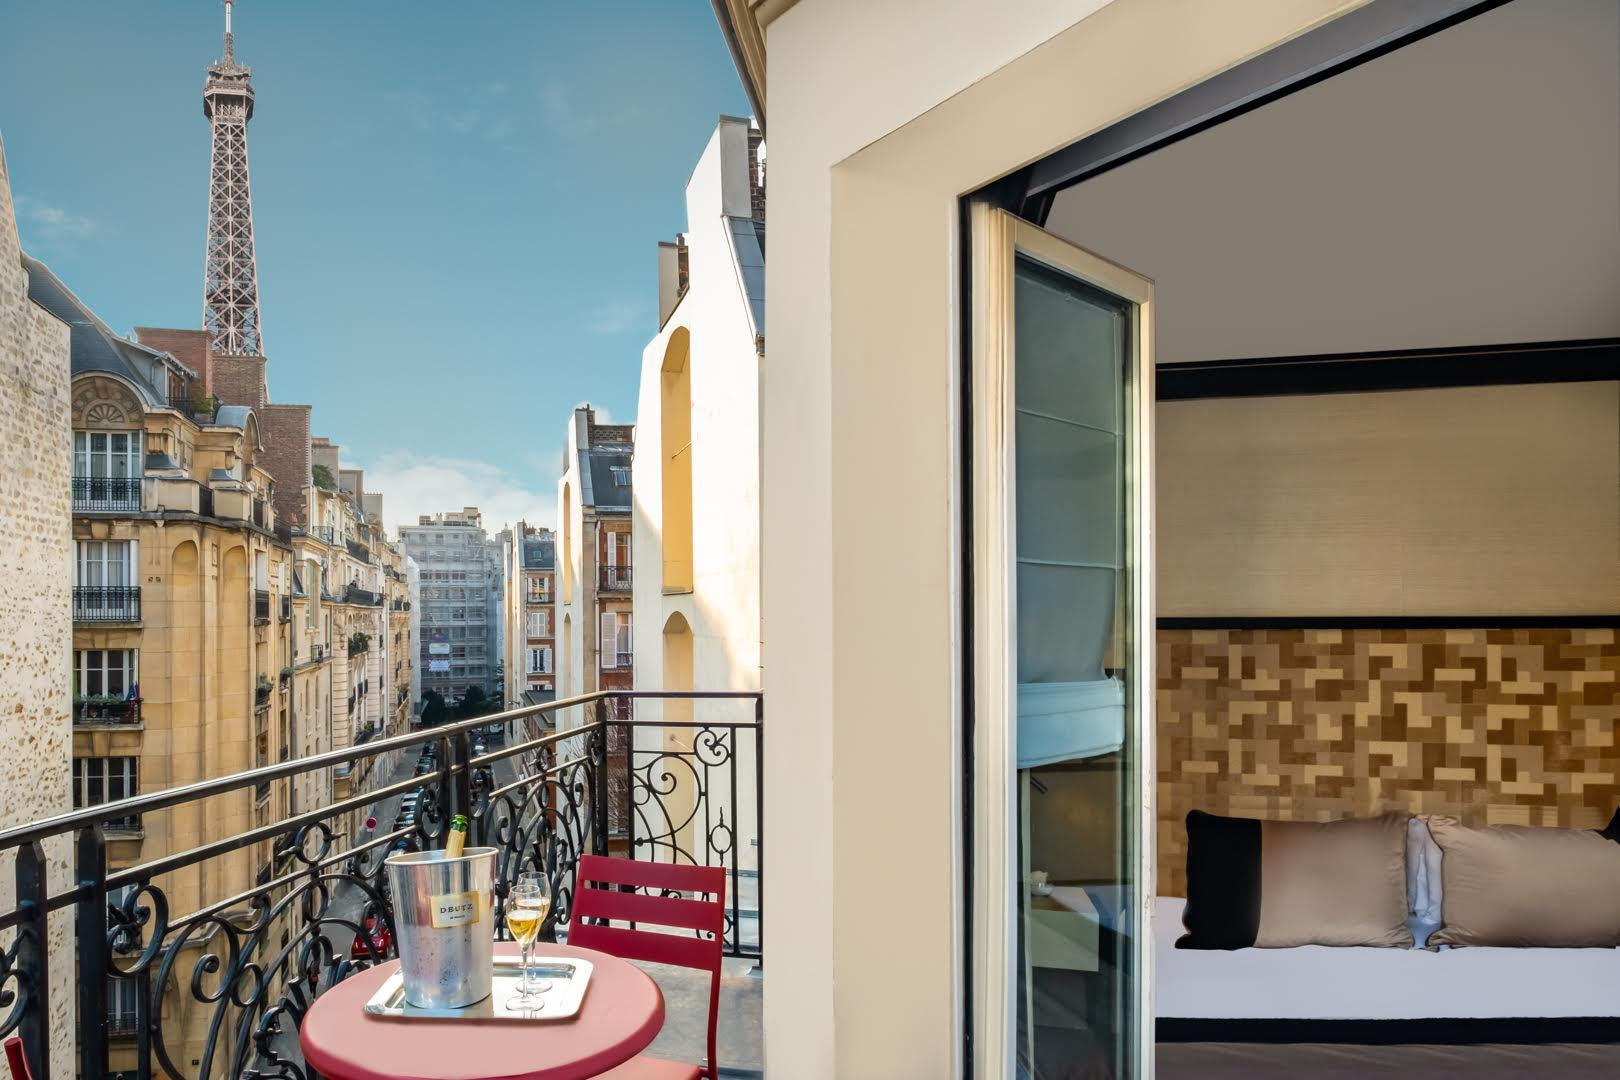 Le Derby Alma- Hotels with Eiffel Tower View Paris 2019